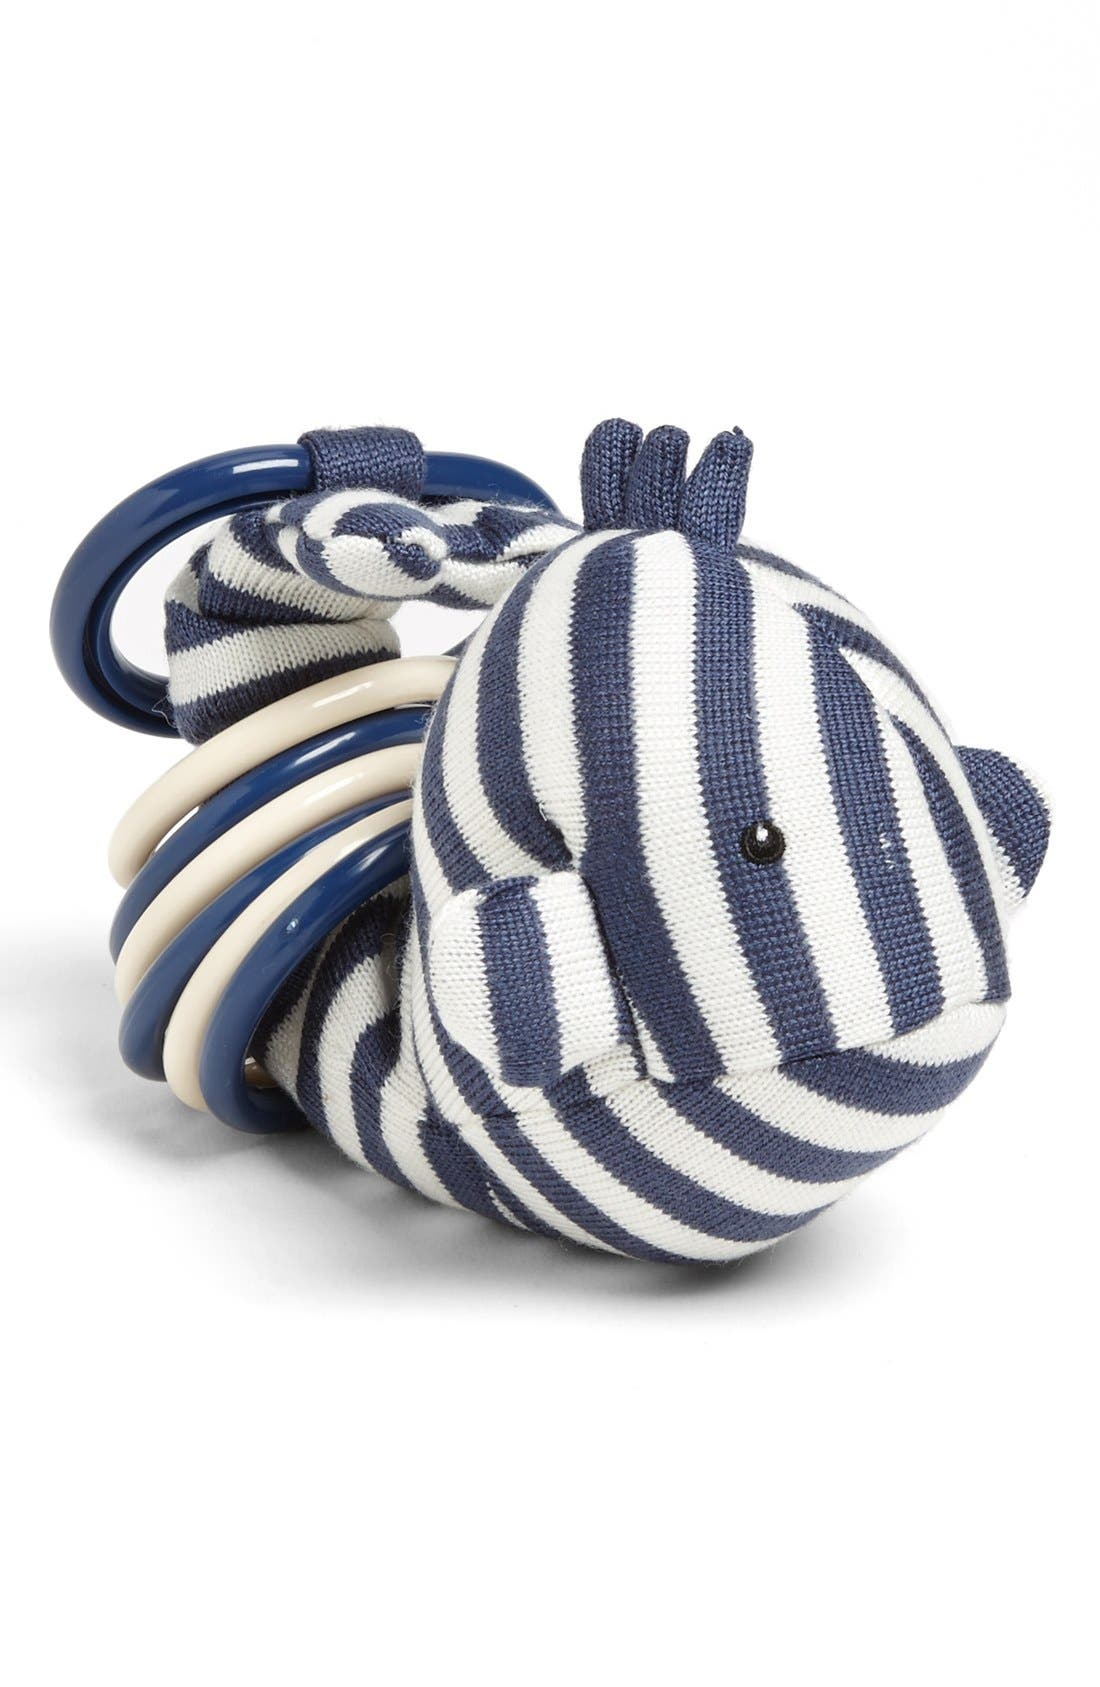 Main Image - Jellycat 'Clicketty Walter Whale' Ring Toy